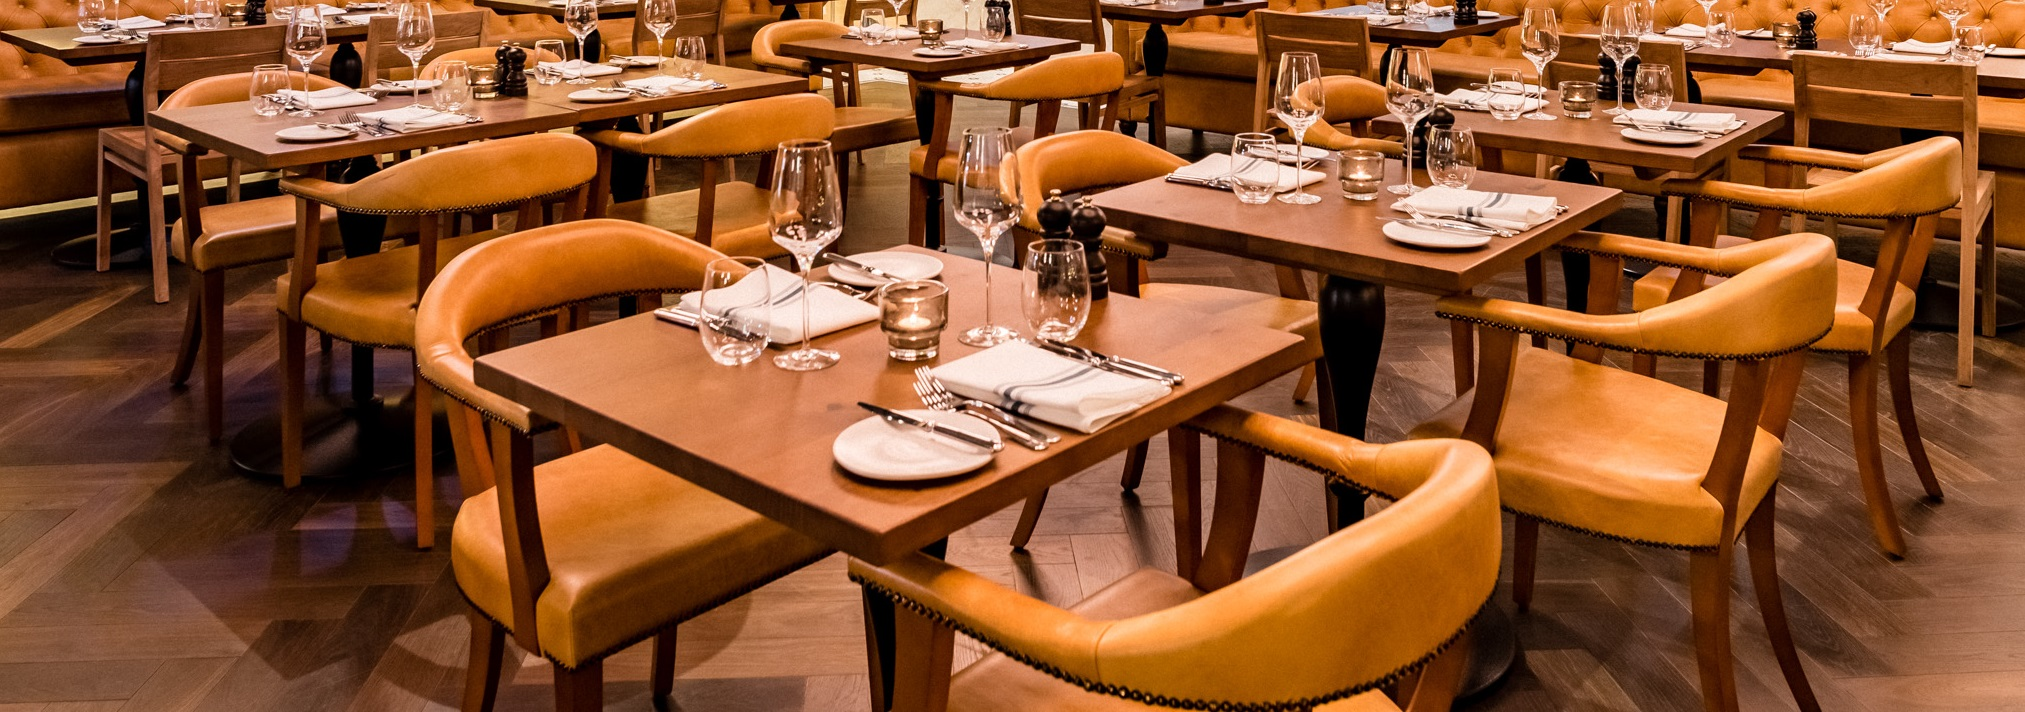 How should restaurant table tops be cleaned in the COVID-19 era?